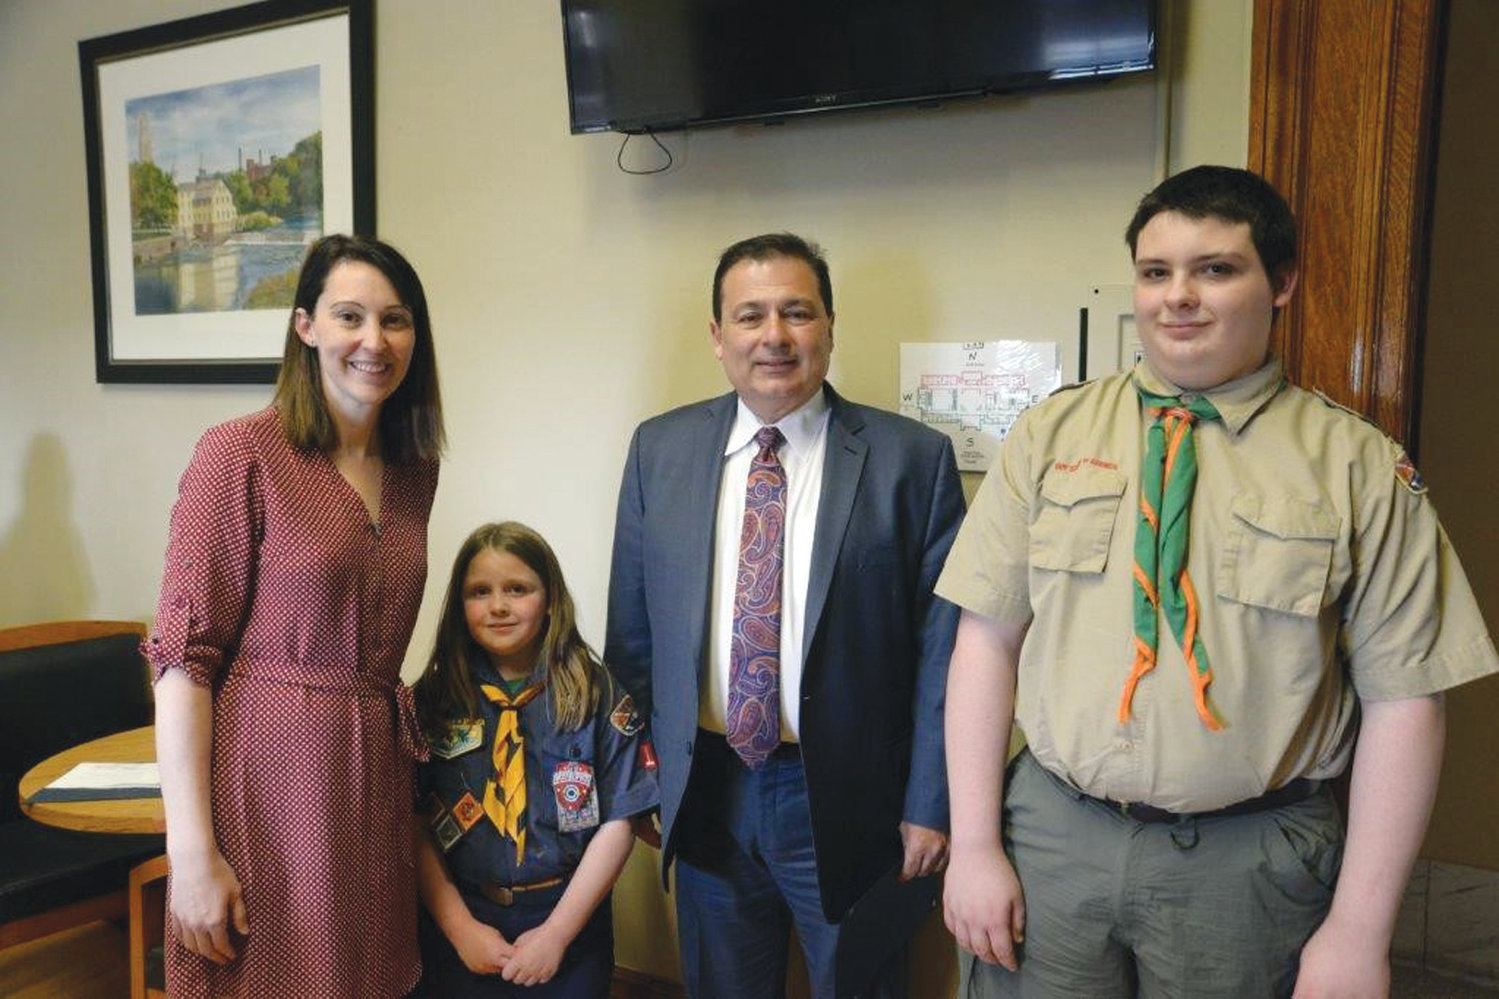 LEADING THE PACK: Tiffany Bumgardner-Scheffler, Director of Field Services/COO of the Narragansett Council; Justina Ladino; Majority Leader Shekarchi and James Ladino pose during the recent Narragansett Council, Boy Scouts of America (NCBSA) tour of the State House.